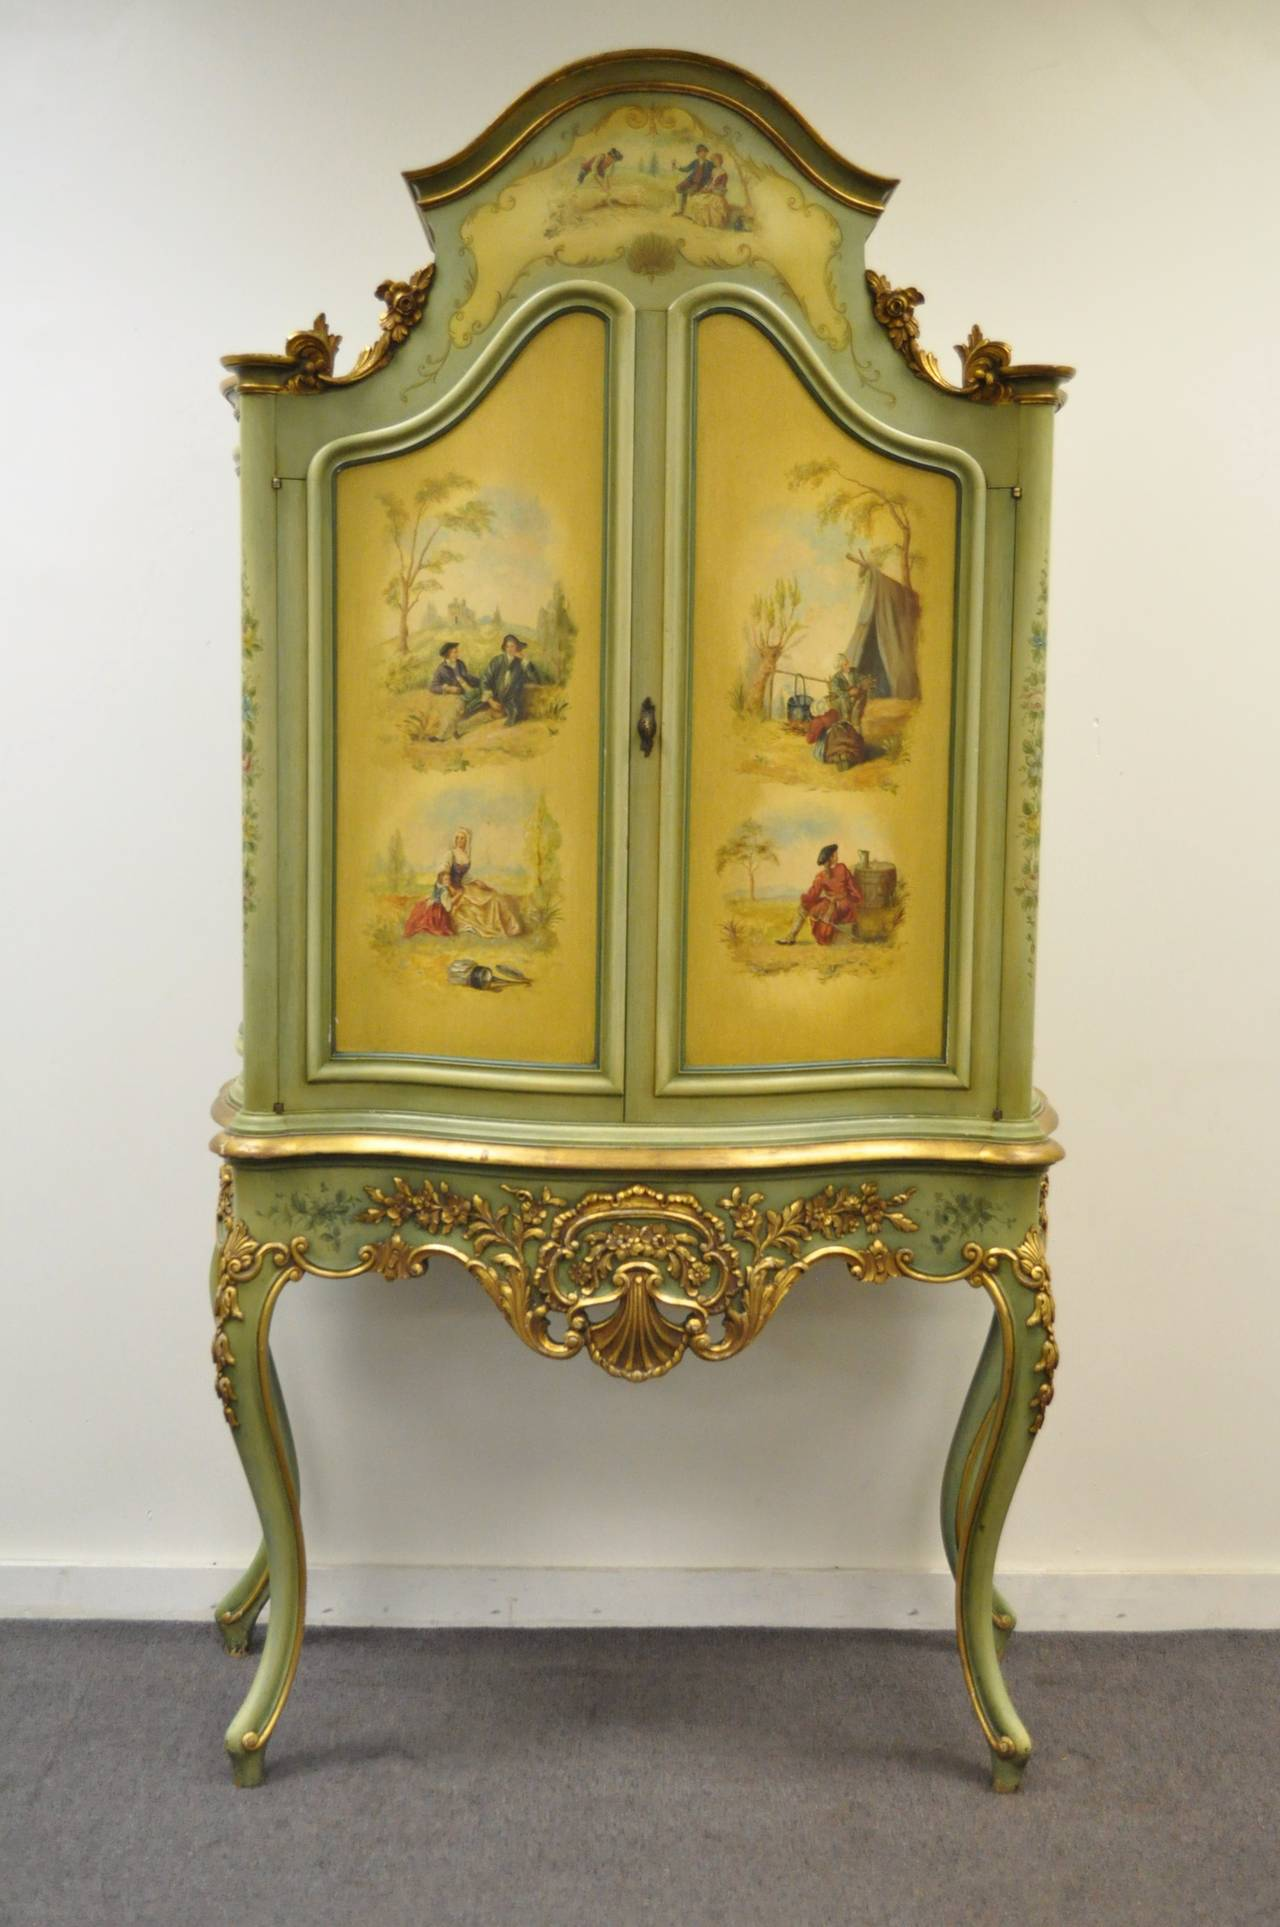 An Exquisitely Hand Carved And Painted French Curio Cabinet In The Louis Xv Taste